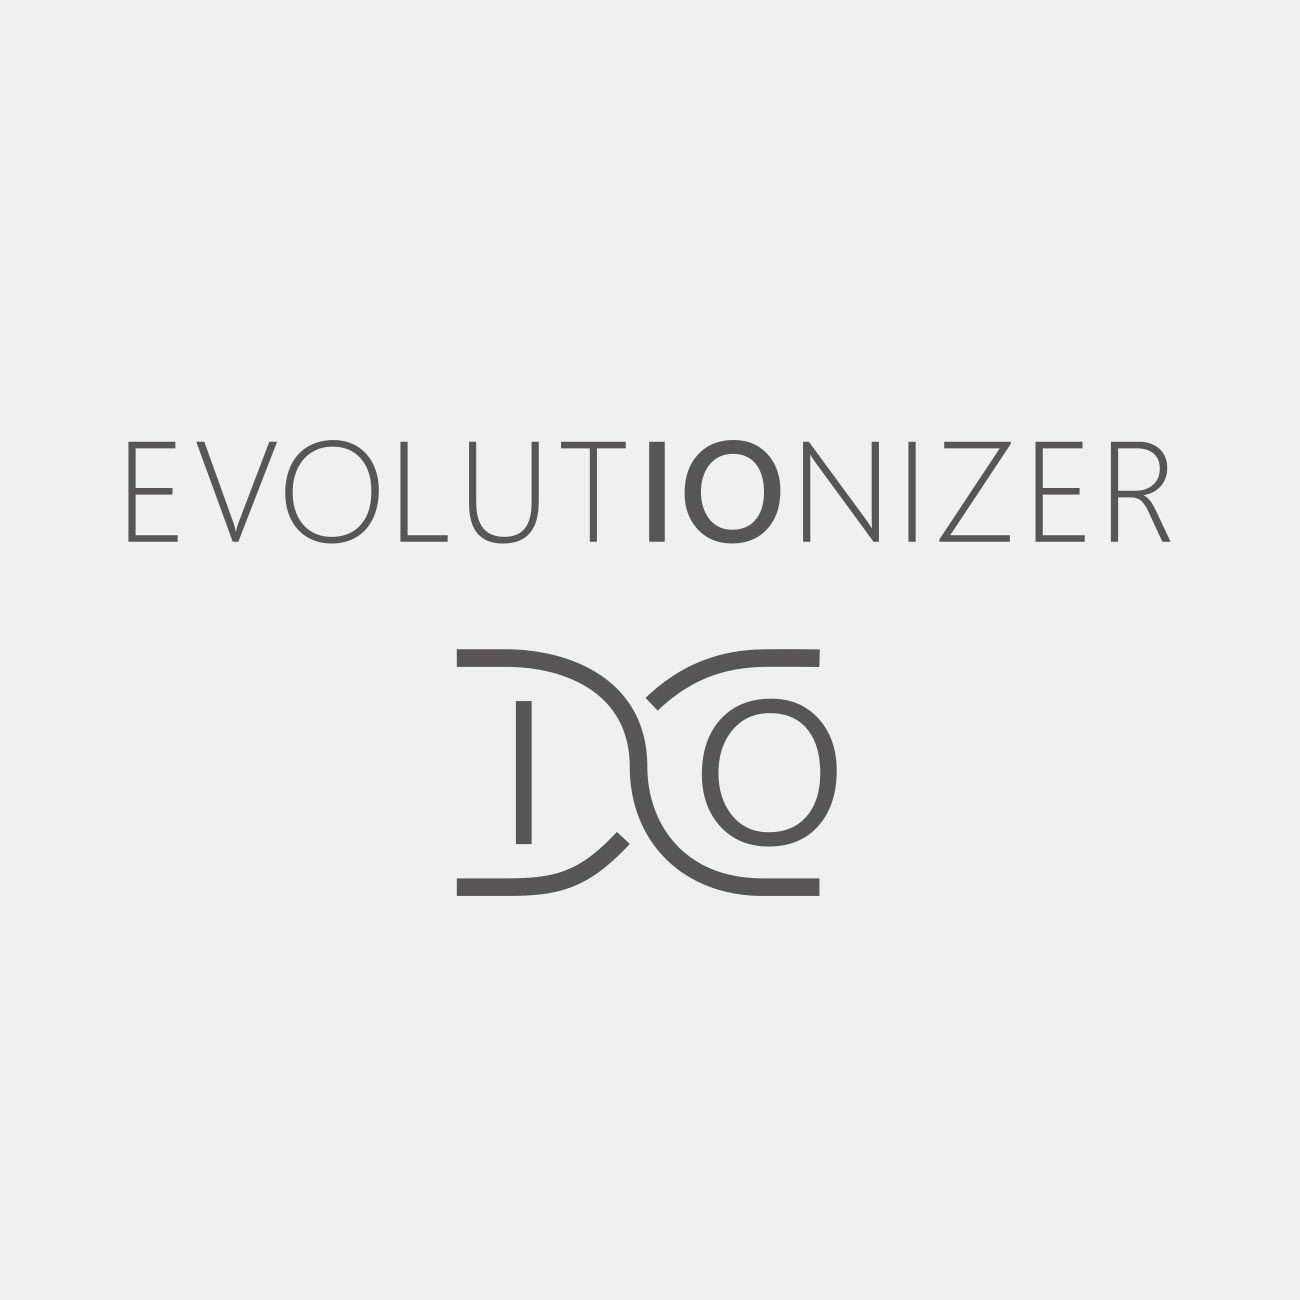 Evolutionizer Logodesign